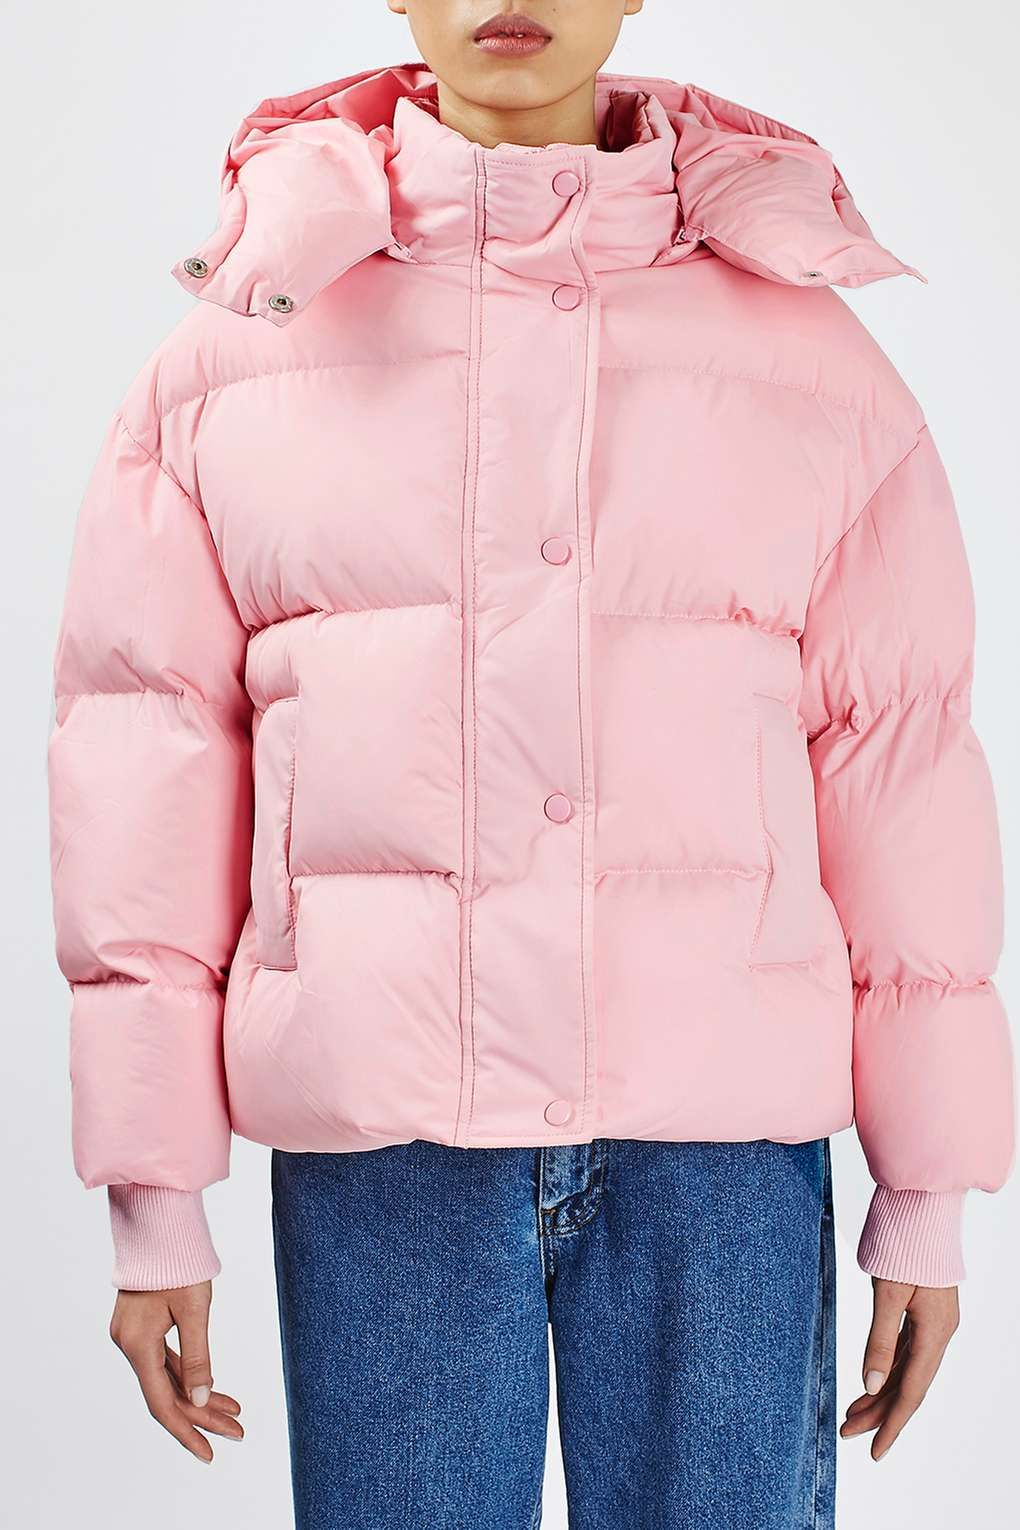 The Puffball Puffer Jacket by Boutique | Puffer jackets, Boutique ...